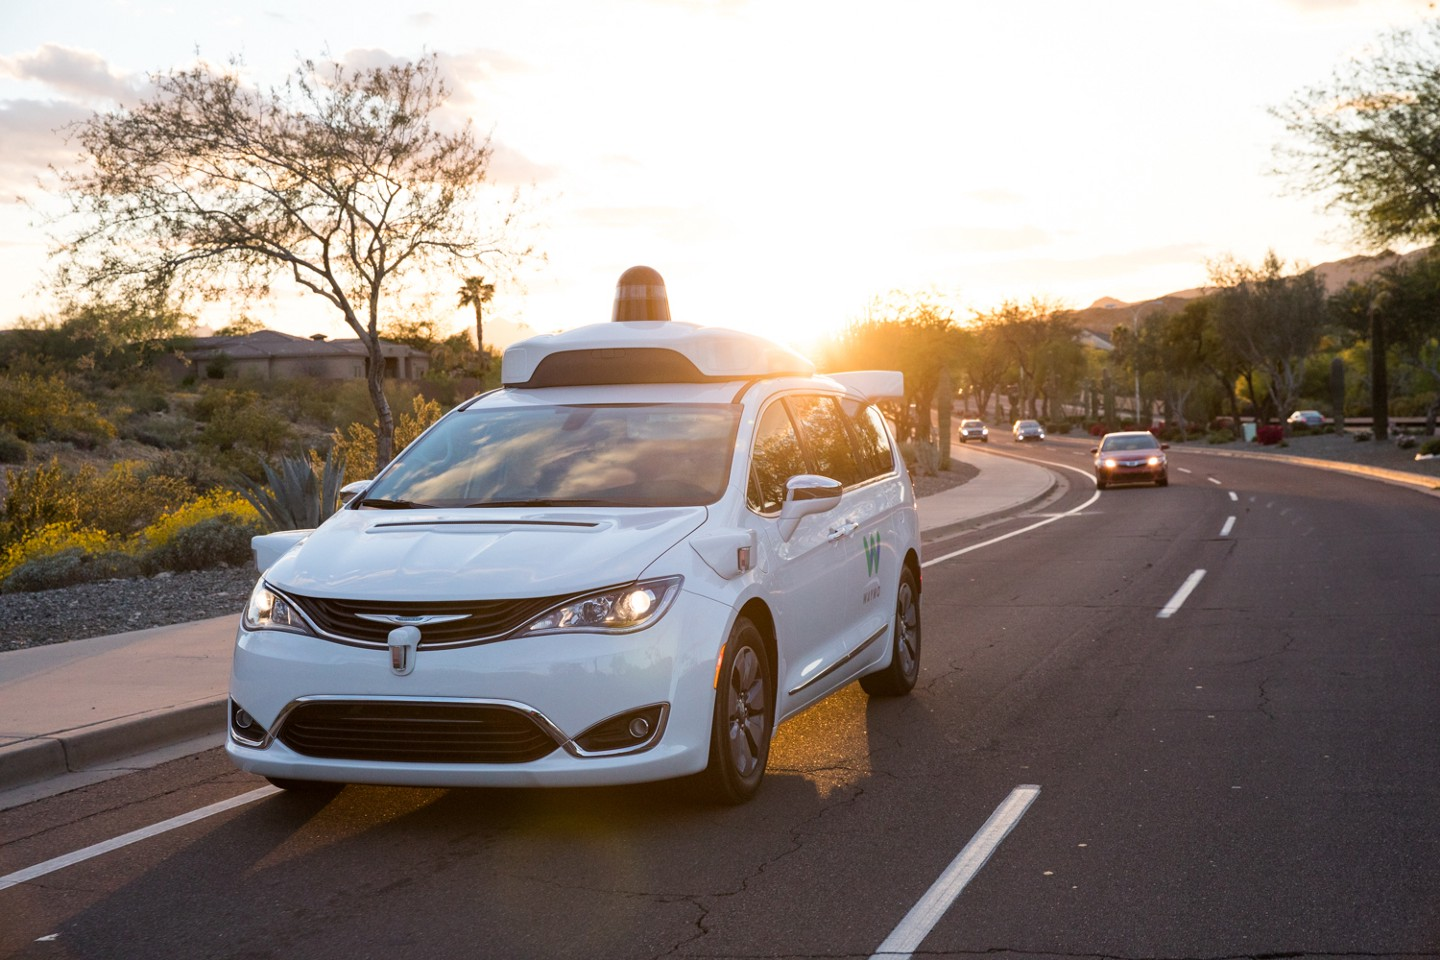 Waymo offers public rides in driverless cars in Phoenix